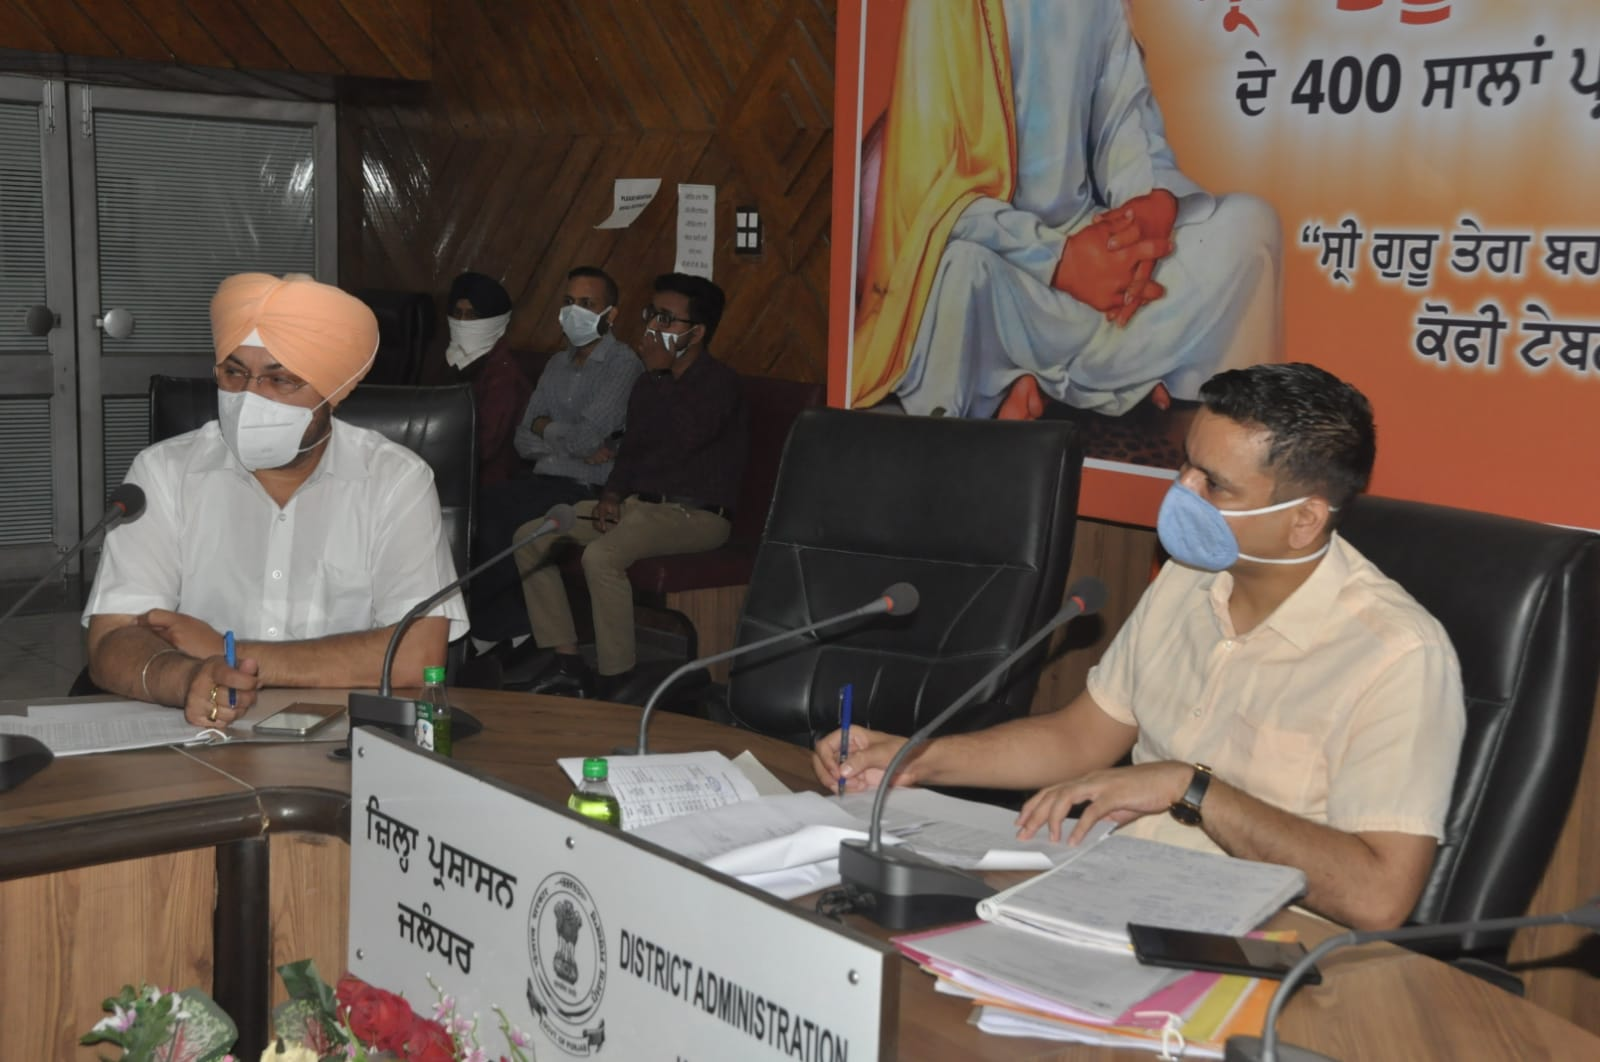 481 Development works amounting to over Rs. 111 crores started under UEIP Phase-II in Jalandhar: Deputy Commissioner Asks officers to strictly adhere to the timelines of completion of these projects Also directs to immediately furnish remaining utilization certificates of completed projects as 295 works completed so far under the first phase